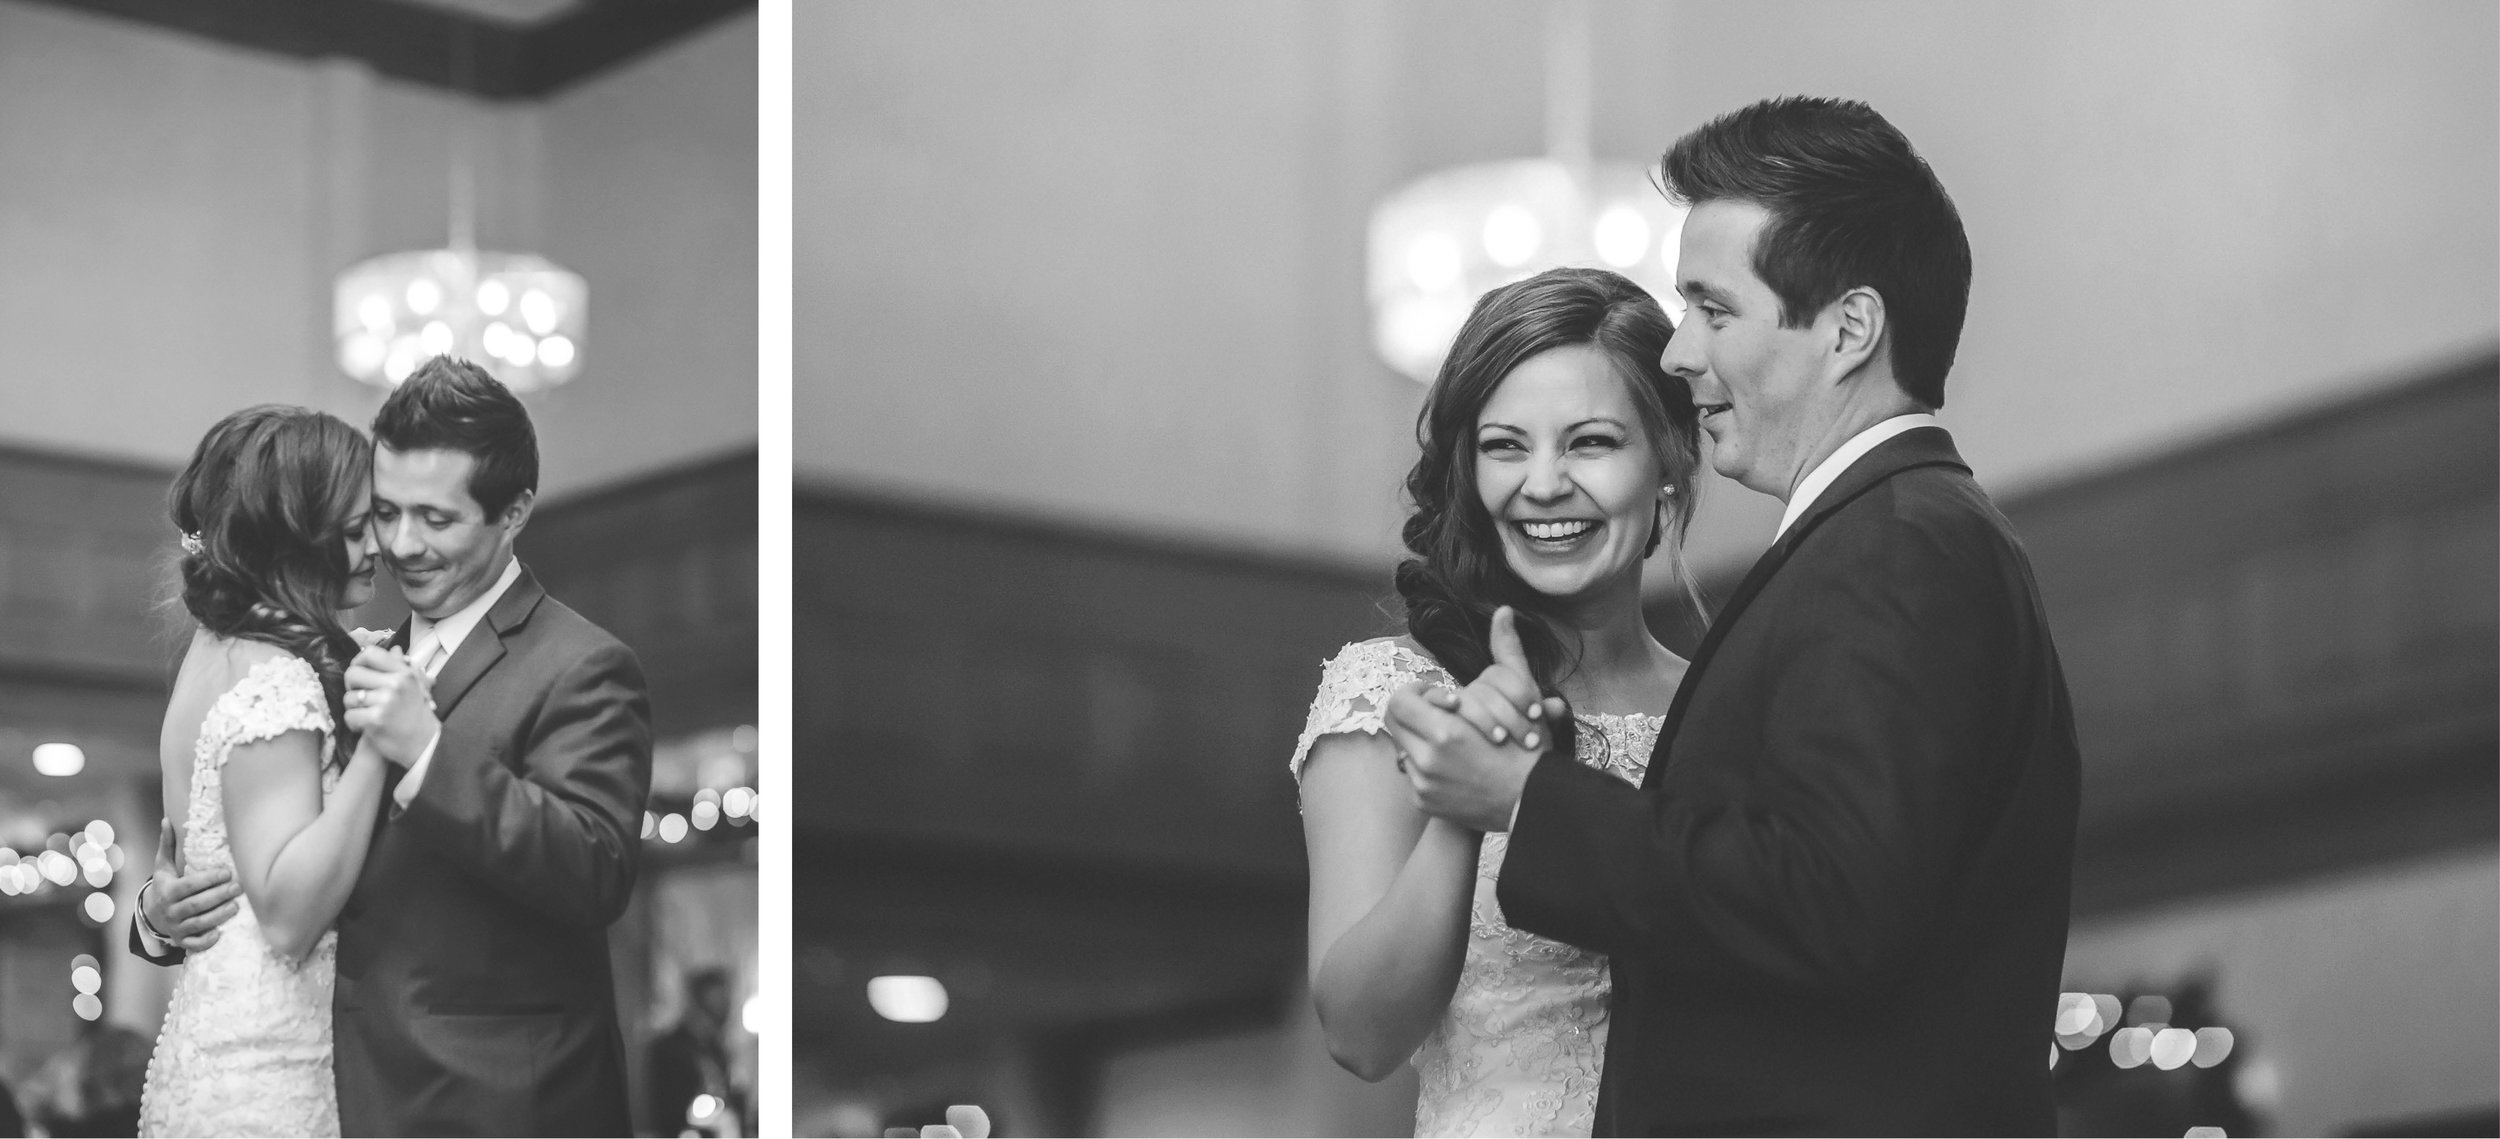 minneapolis winter wedding photography-46.jpg